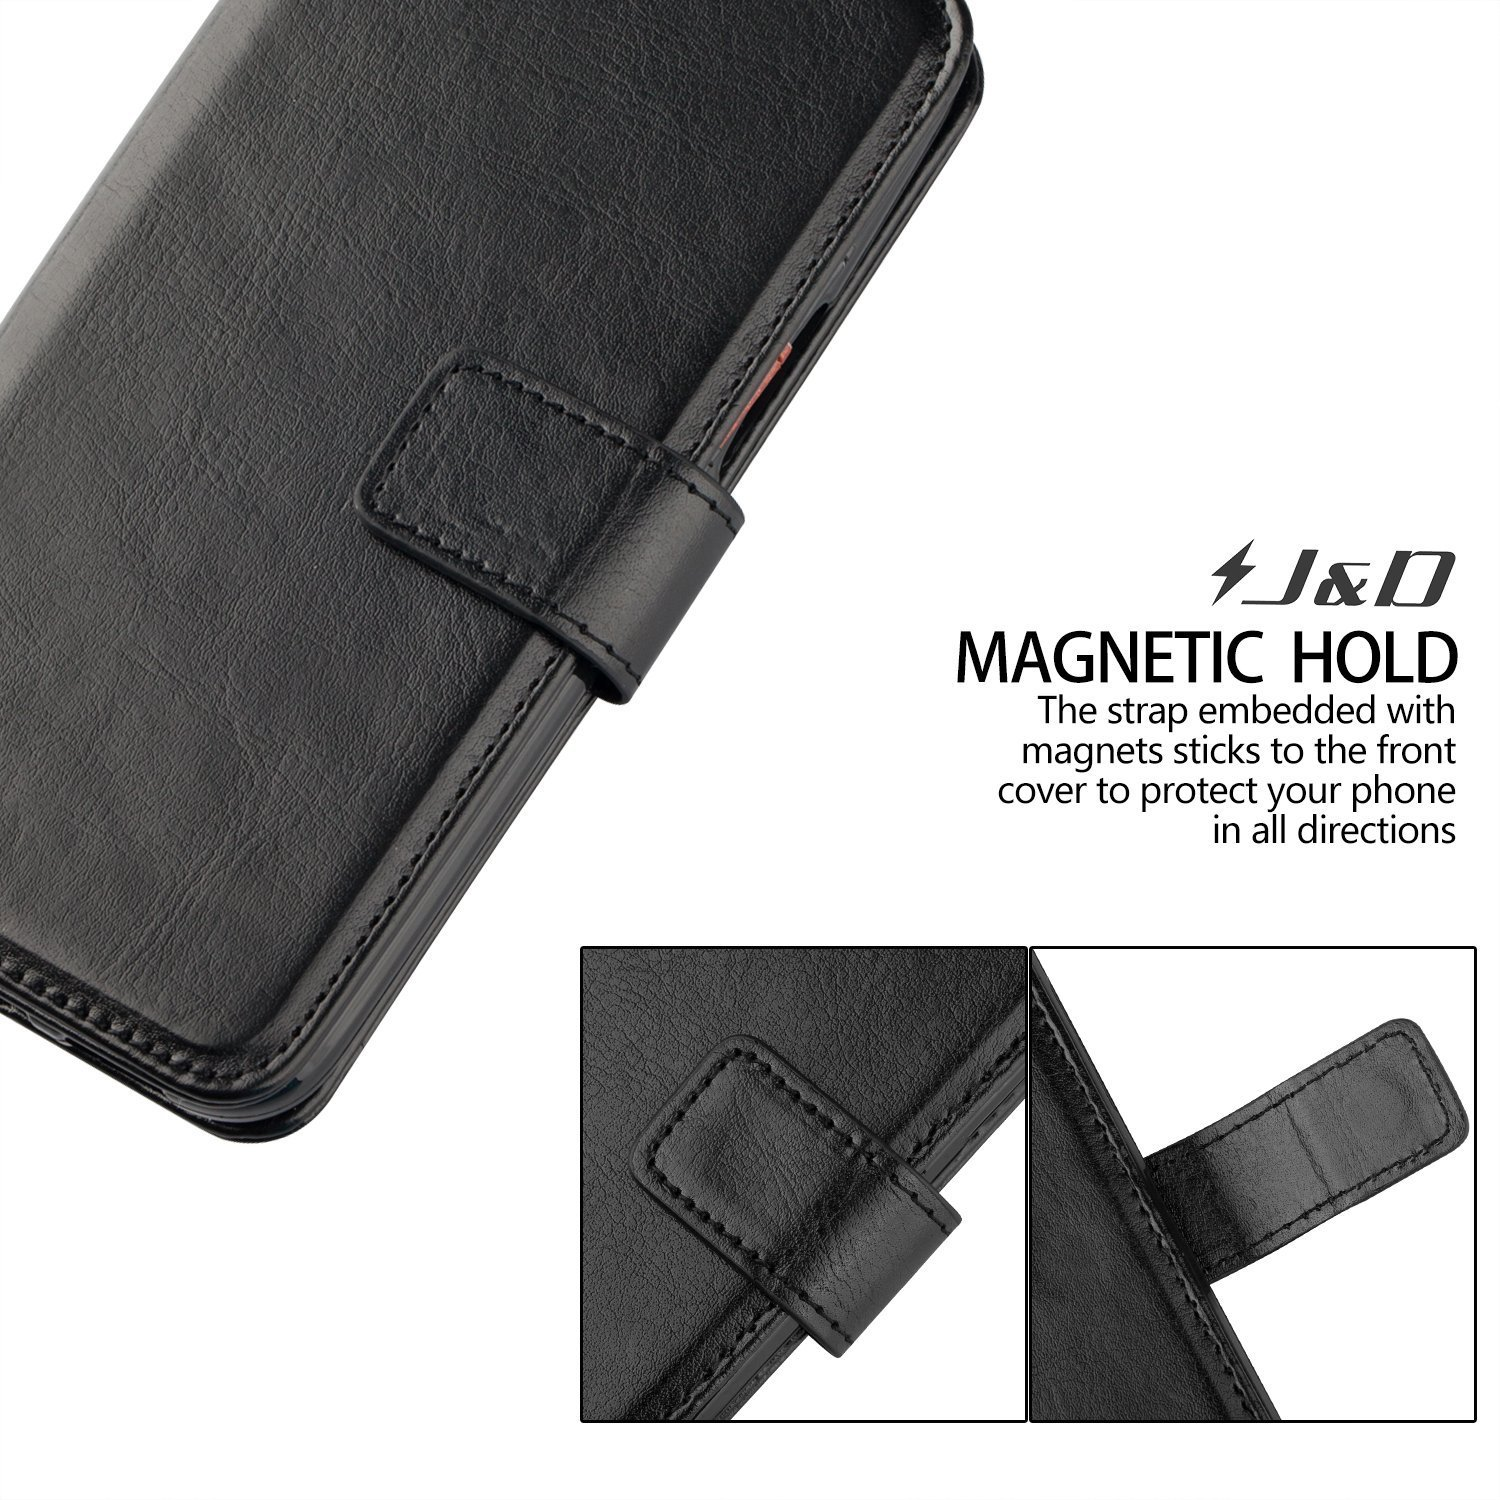 Slim Fit NOT for Galaxy A8 Plus 2018 // A8+ 2018 J/&D Case Compatible for Galaxy A8 2018 Case, Heavy Duty Shockproof Flip Cover Wallet Case for Samsung Galaxy A8 2018 Wallet Case - Wallet Stand